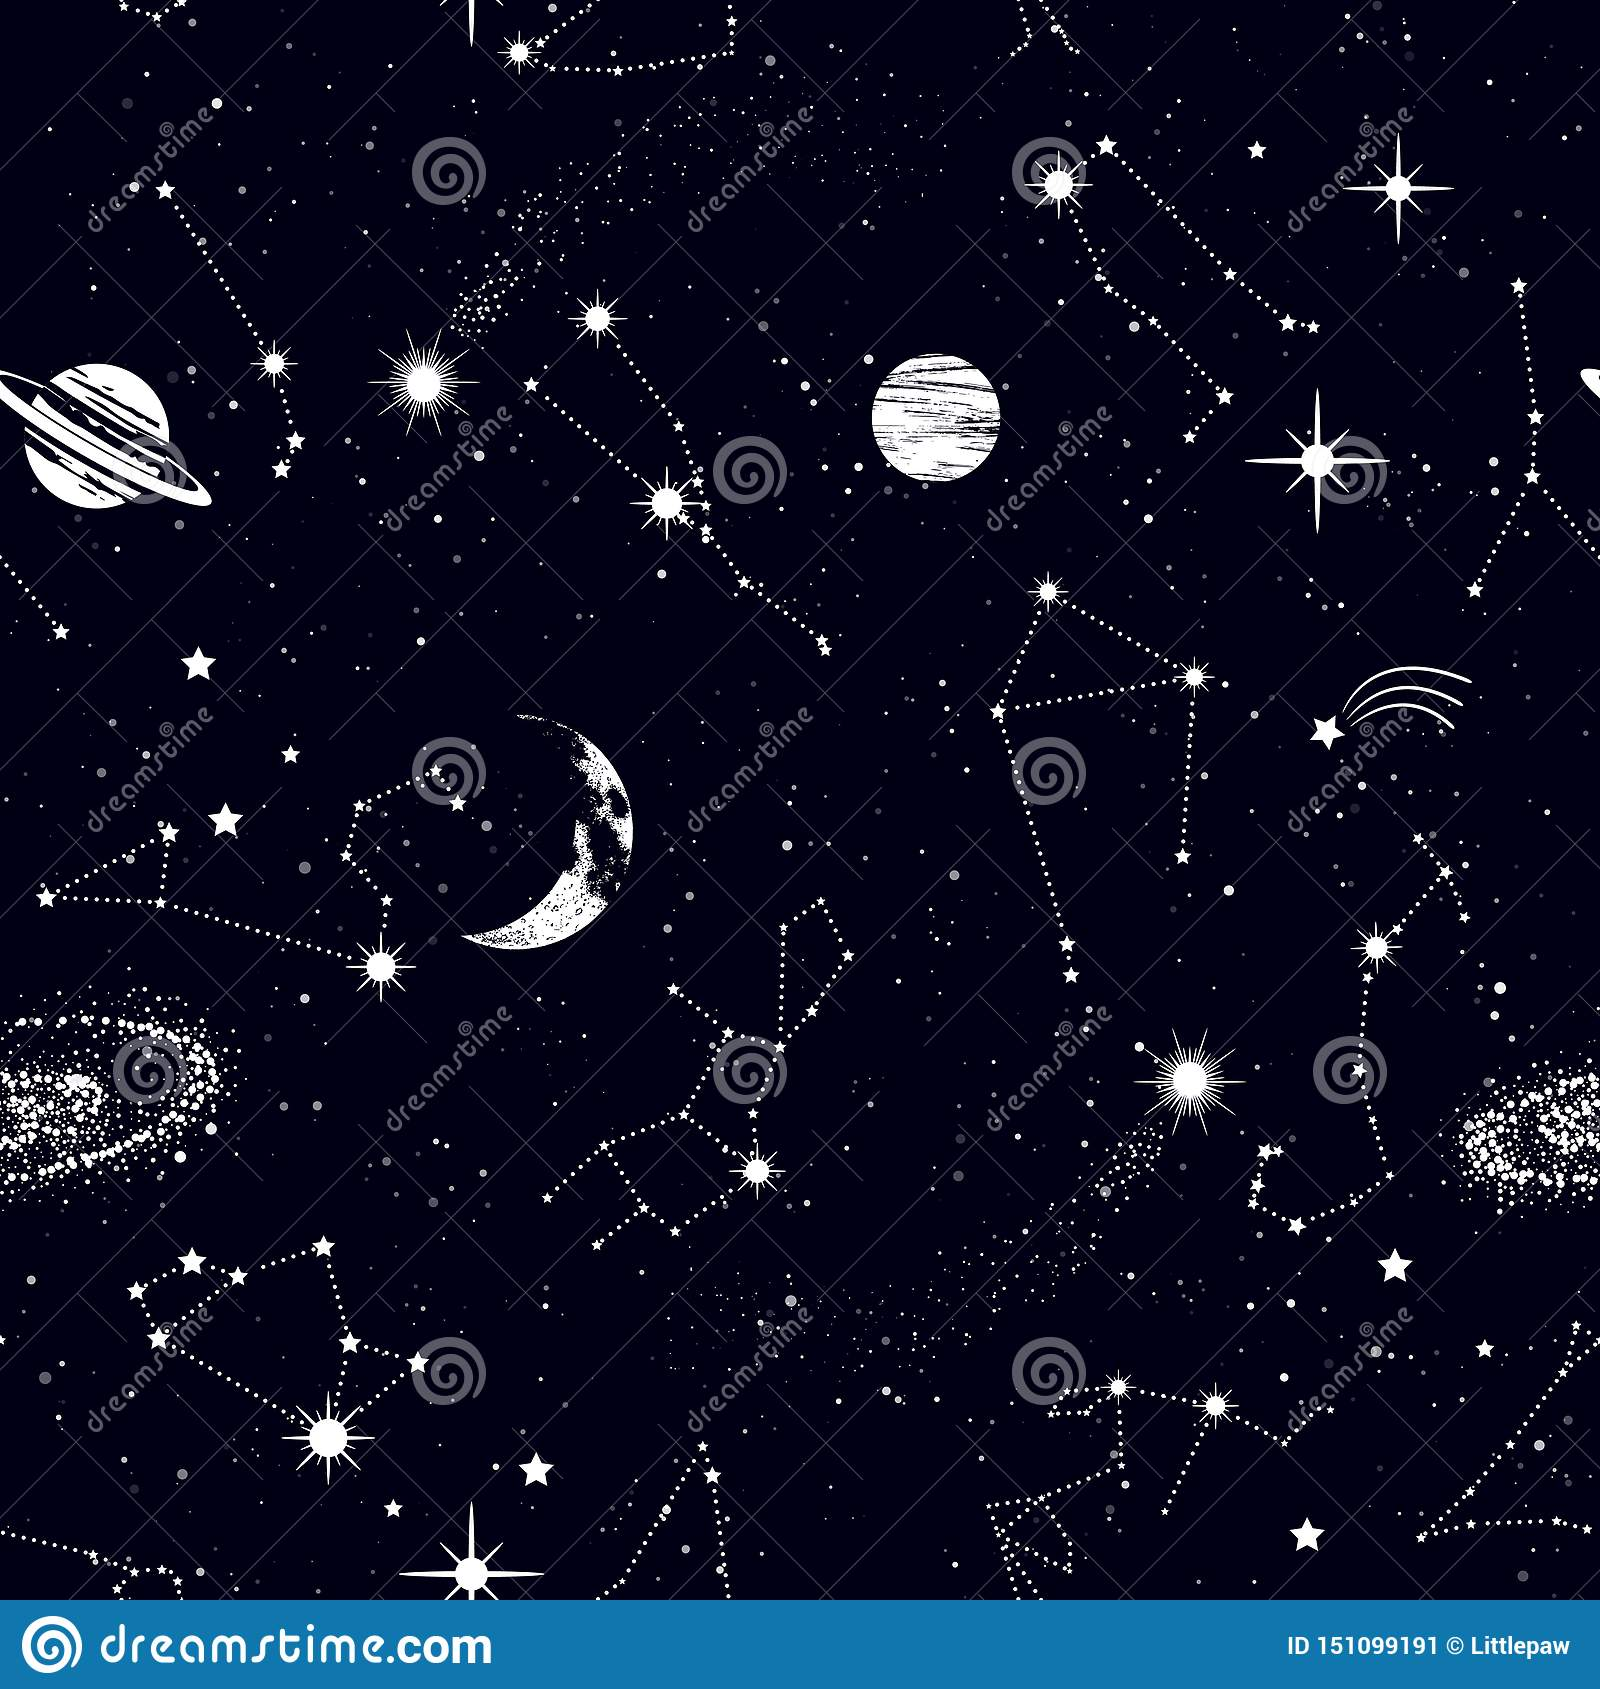 space seamless pattern zodiac constellations galaxy stars planets outer texture wallpapers fabric wrap web page 151099191